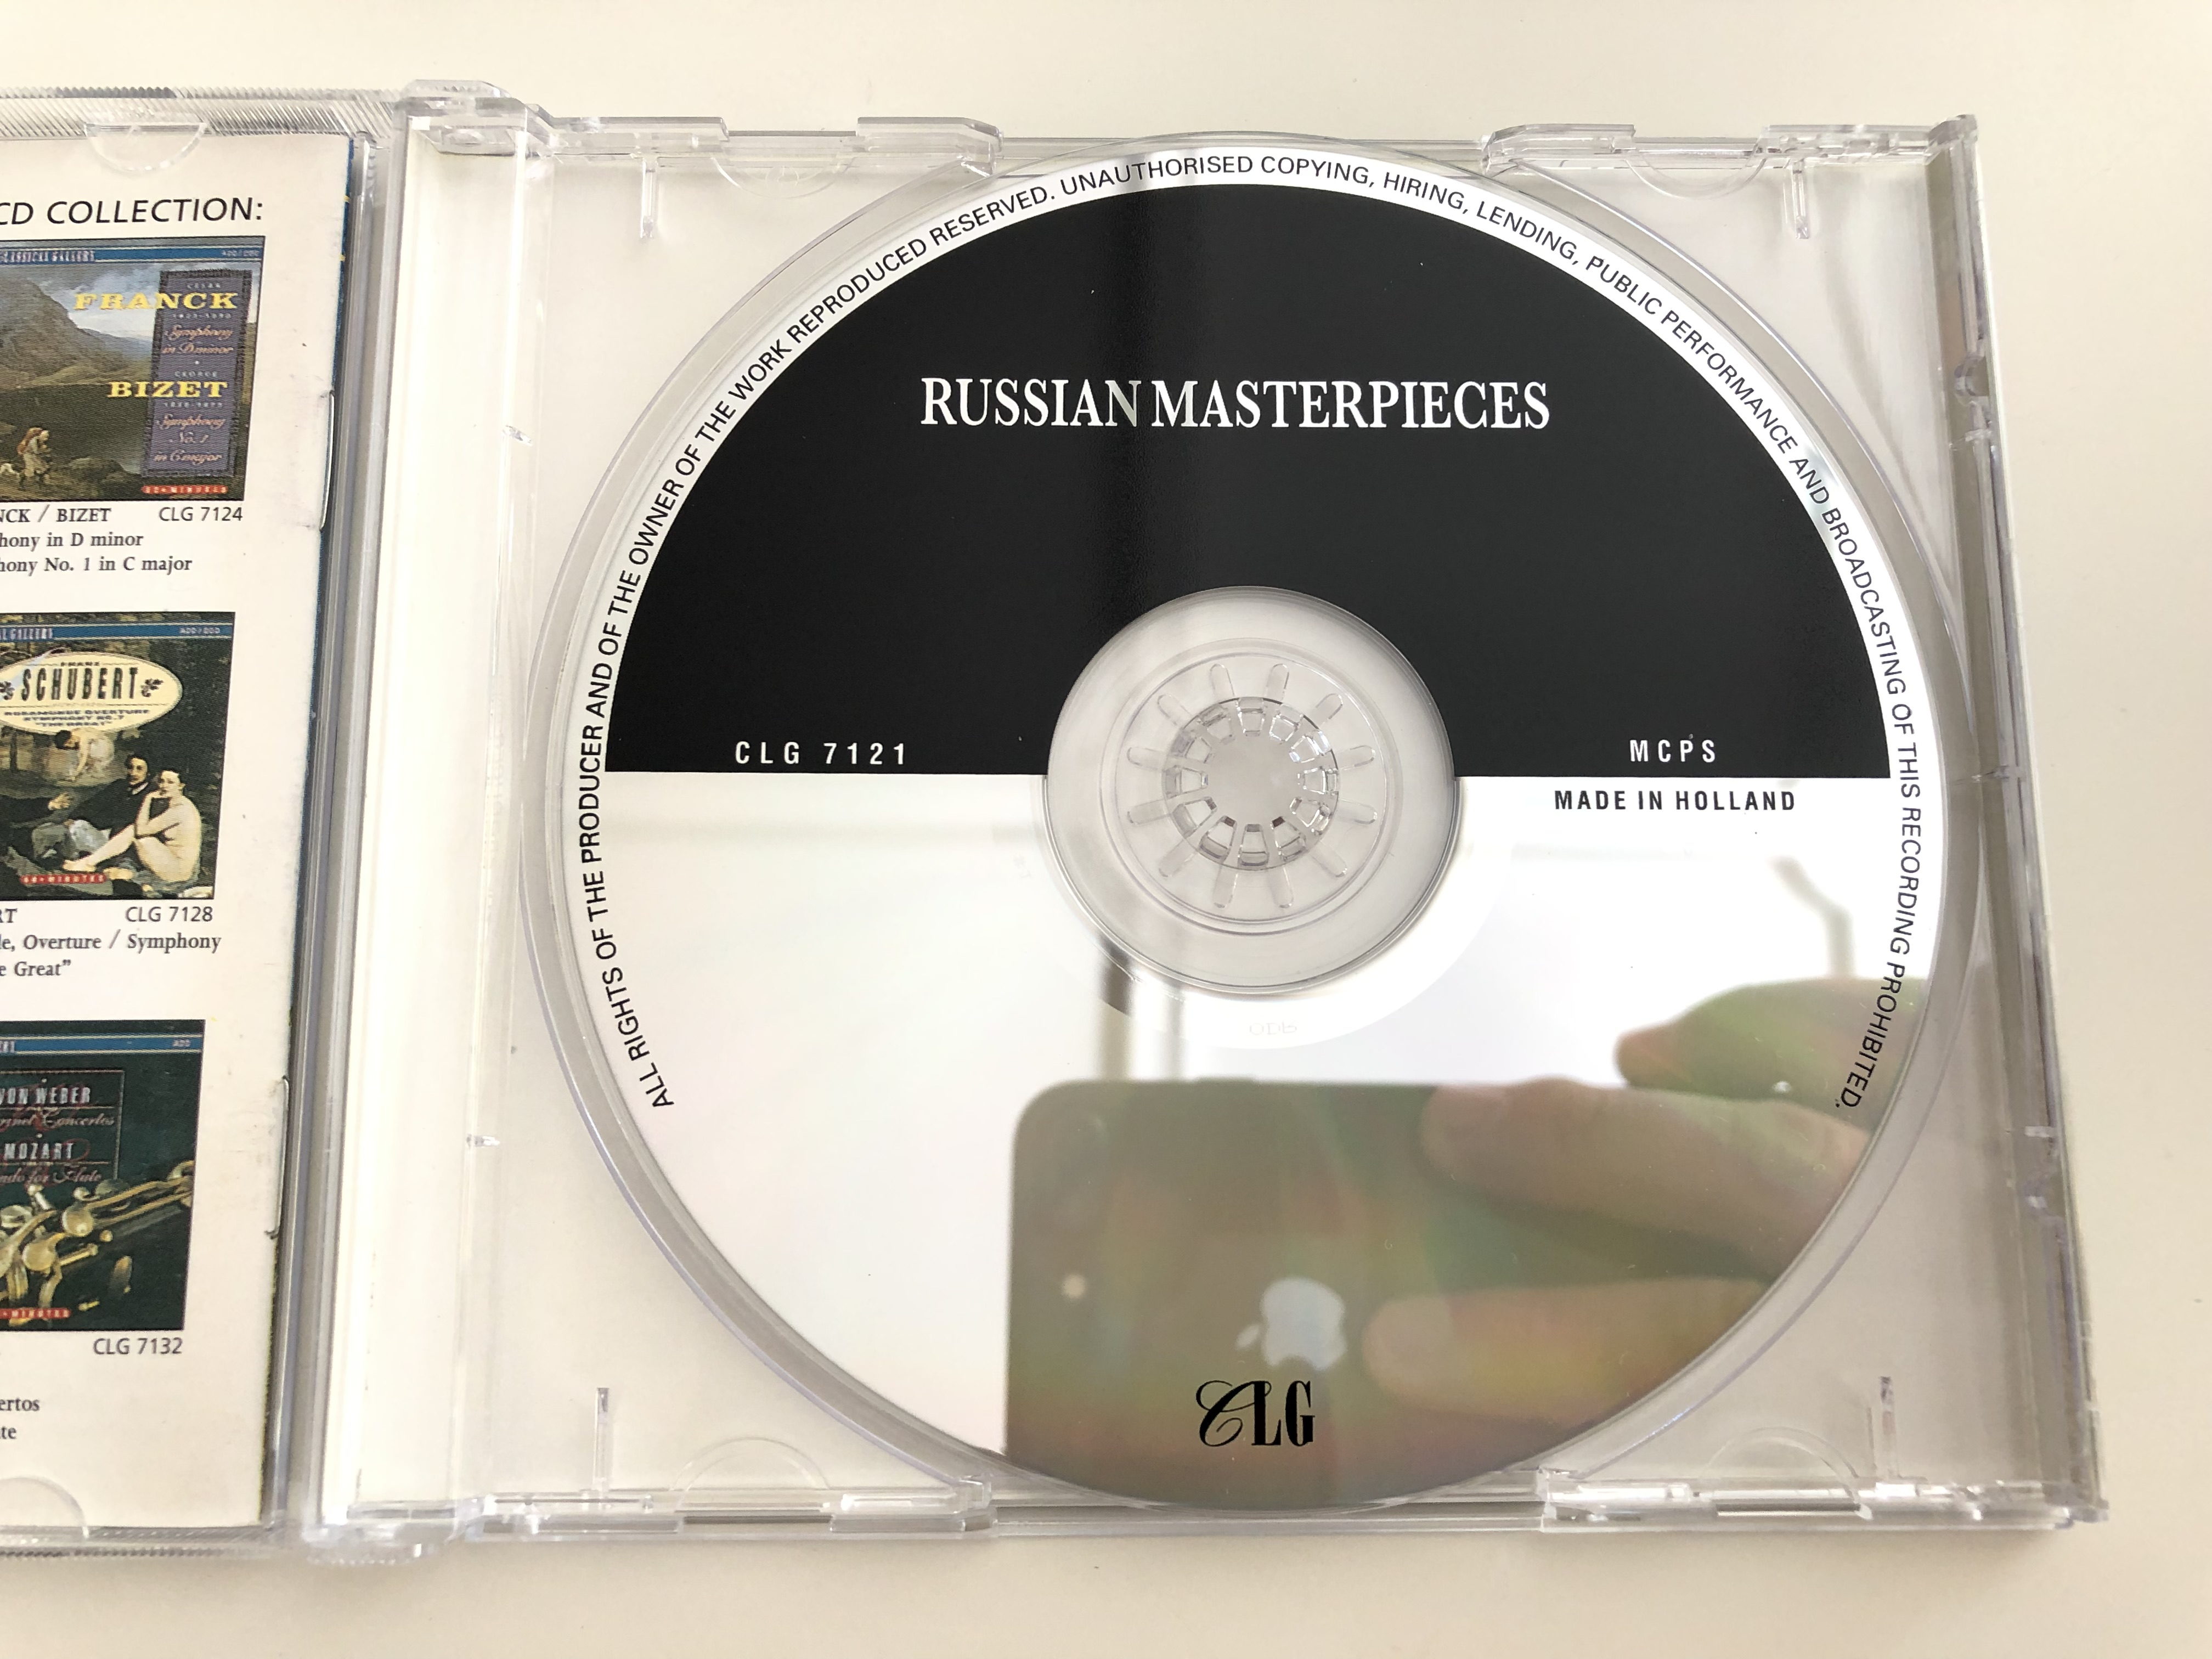 -russian-masterpieces-tchaikovsky-romeo-and-juliet-borodin-in-the-steppes-of-central-asia-shostakovich-the-gadfly-rimsky-korsakov-fantasy-on-serbian-themes-classical-gallery-clg-7121-audio-cd-1994-4-.jpg